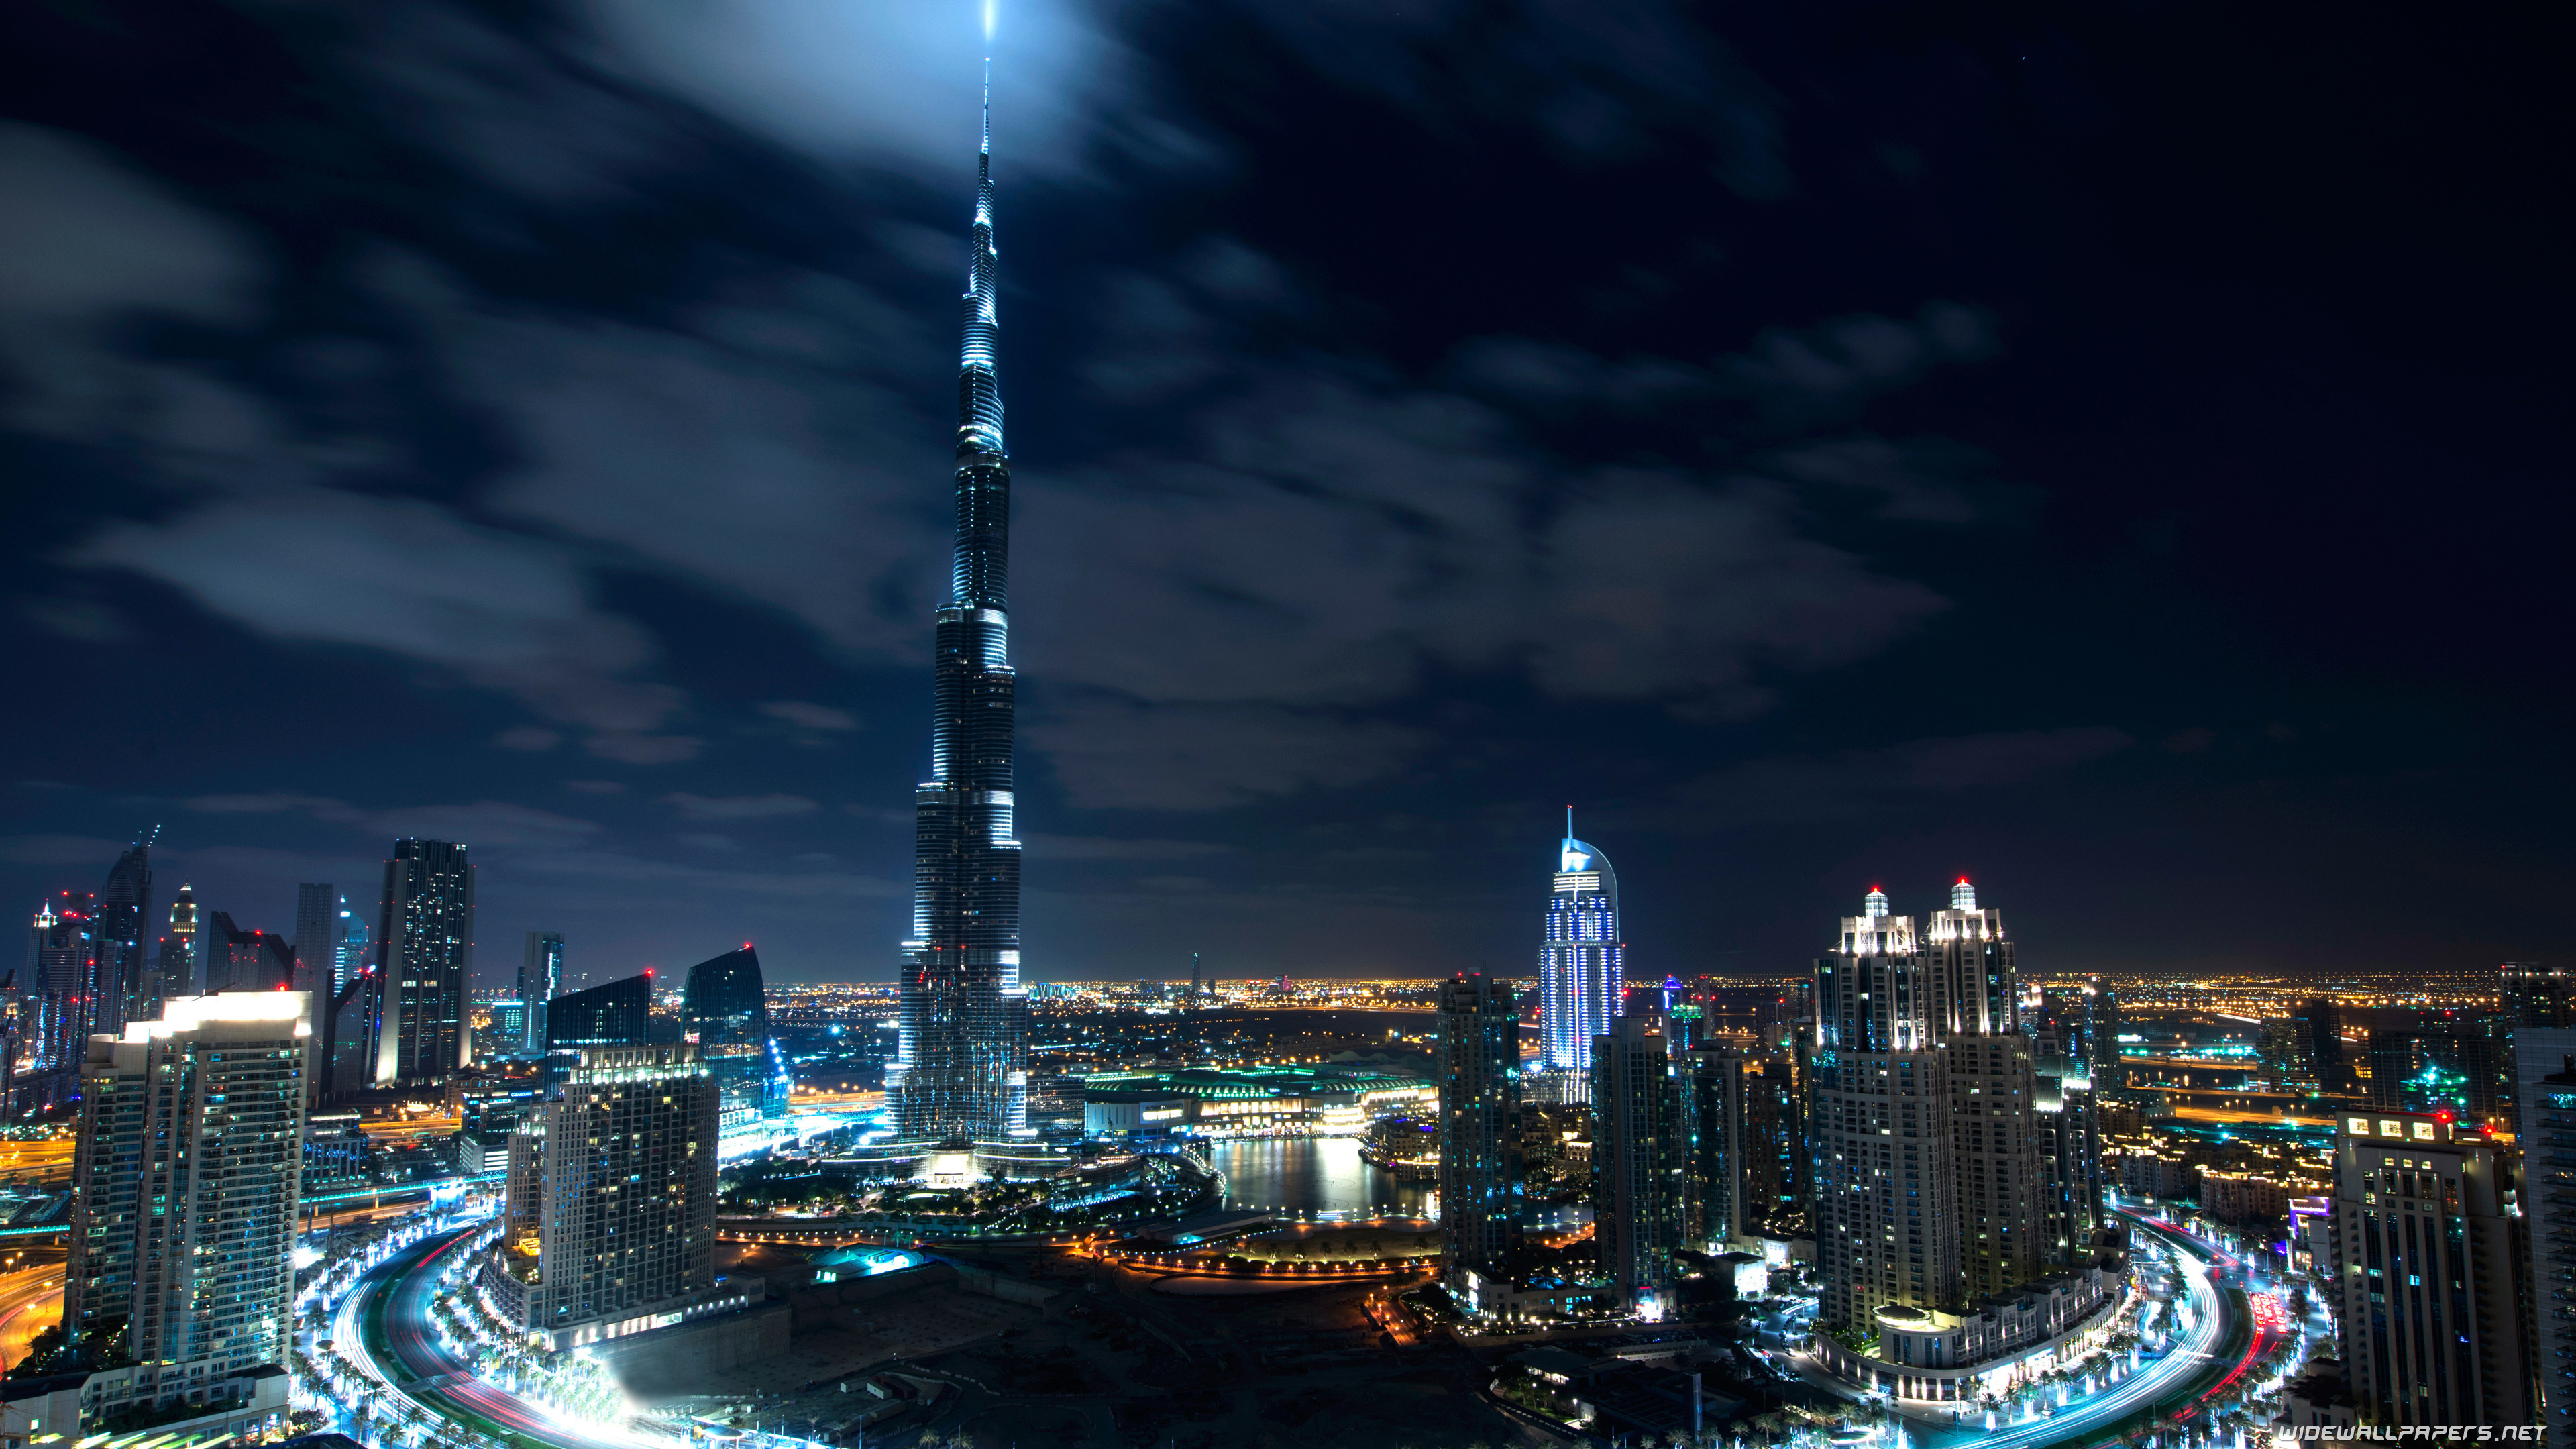 Dubai wallpapers images photos pictures backgrounds - 4k ultra hd wallpapers for desktop ...